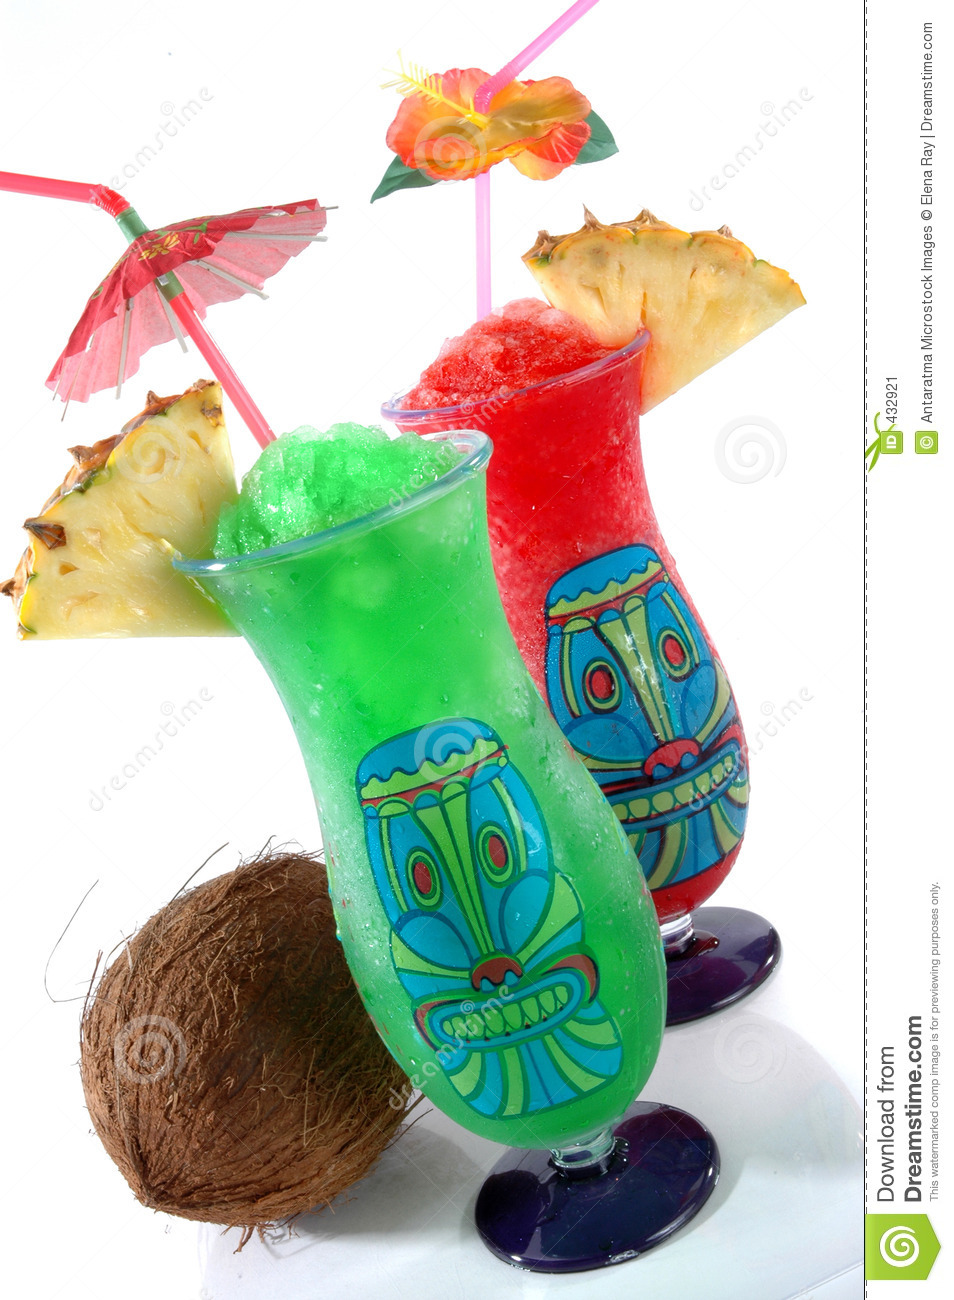 Fun Plastic Tiki Glasses Filled With Colorful Icy Drinks And A Coconut